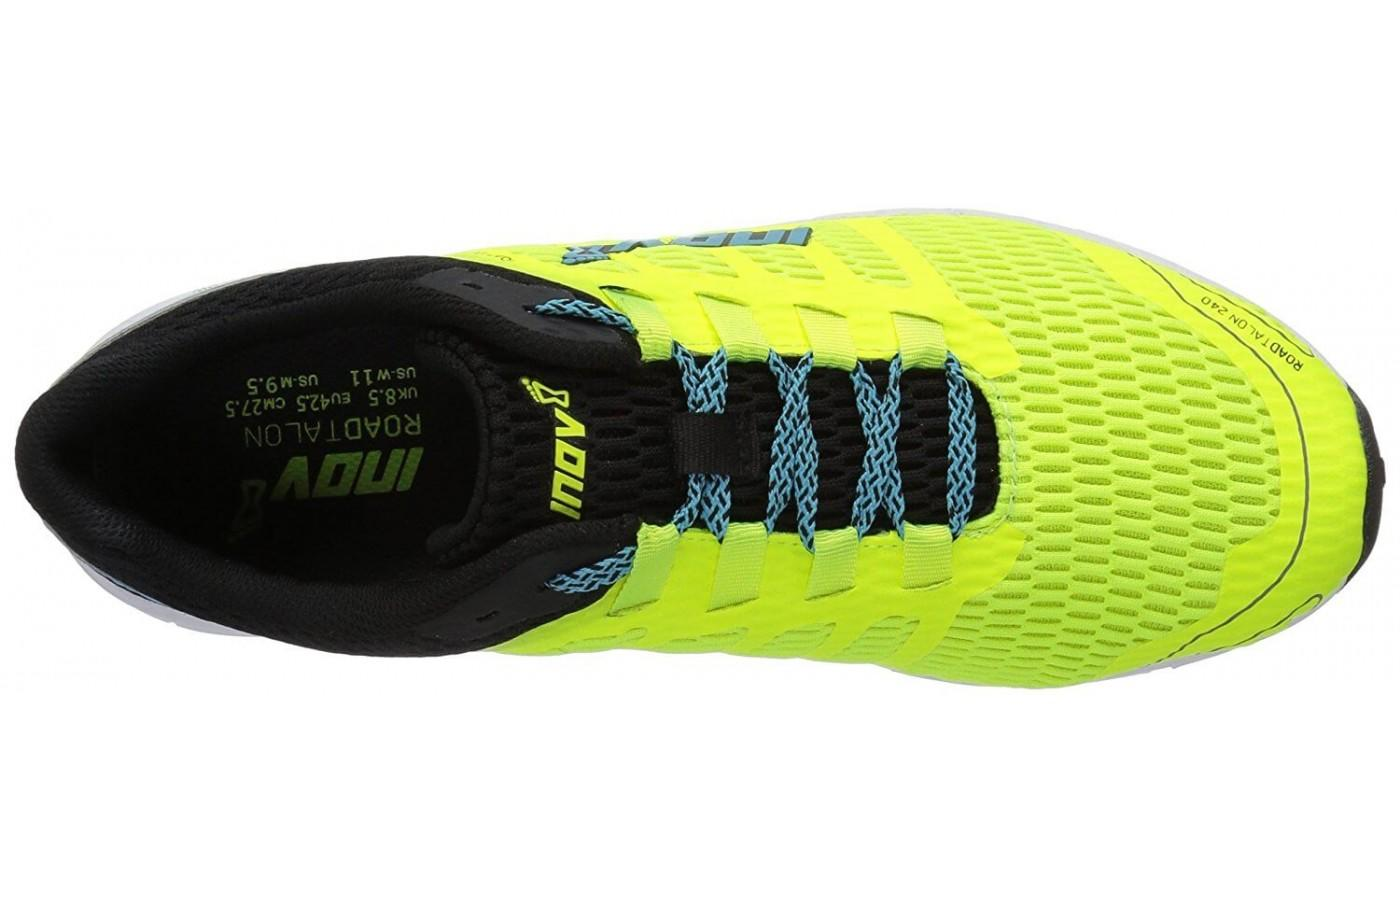 The breathable mesh upper of the Inov-8 Roadtalon 240.